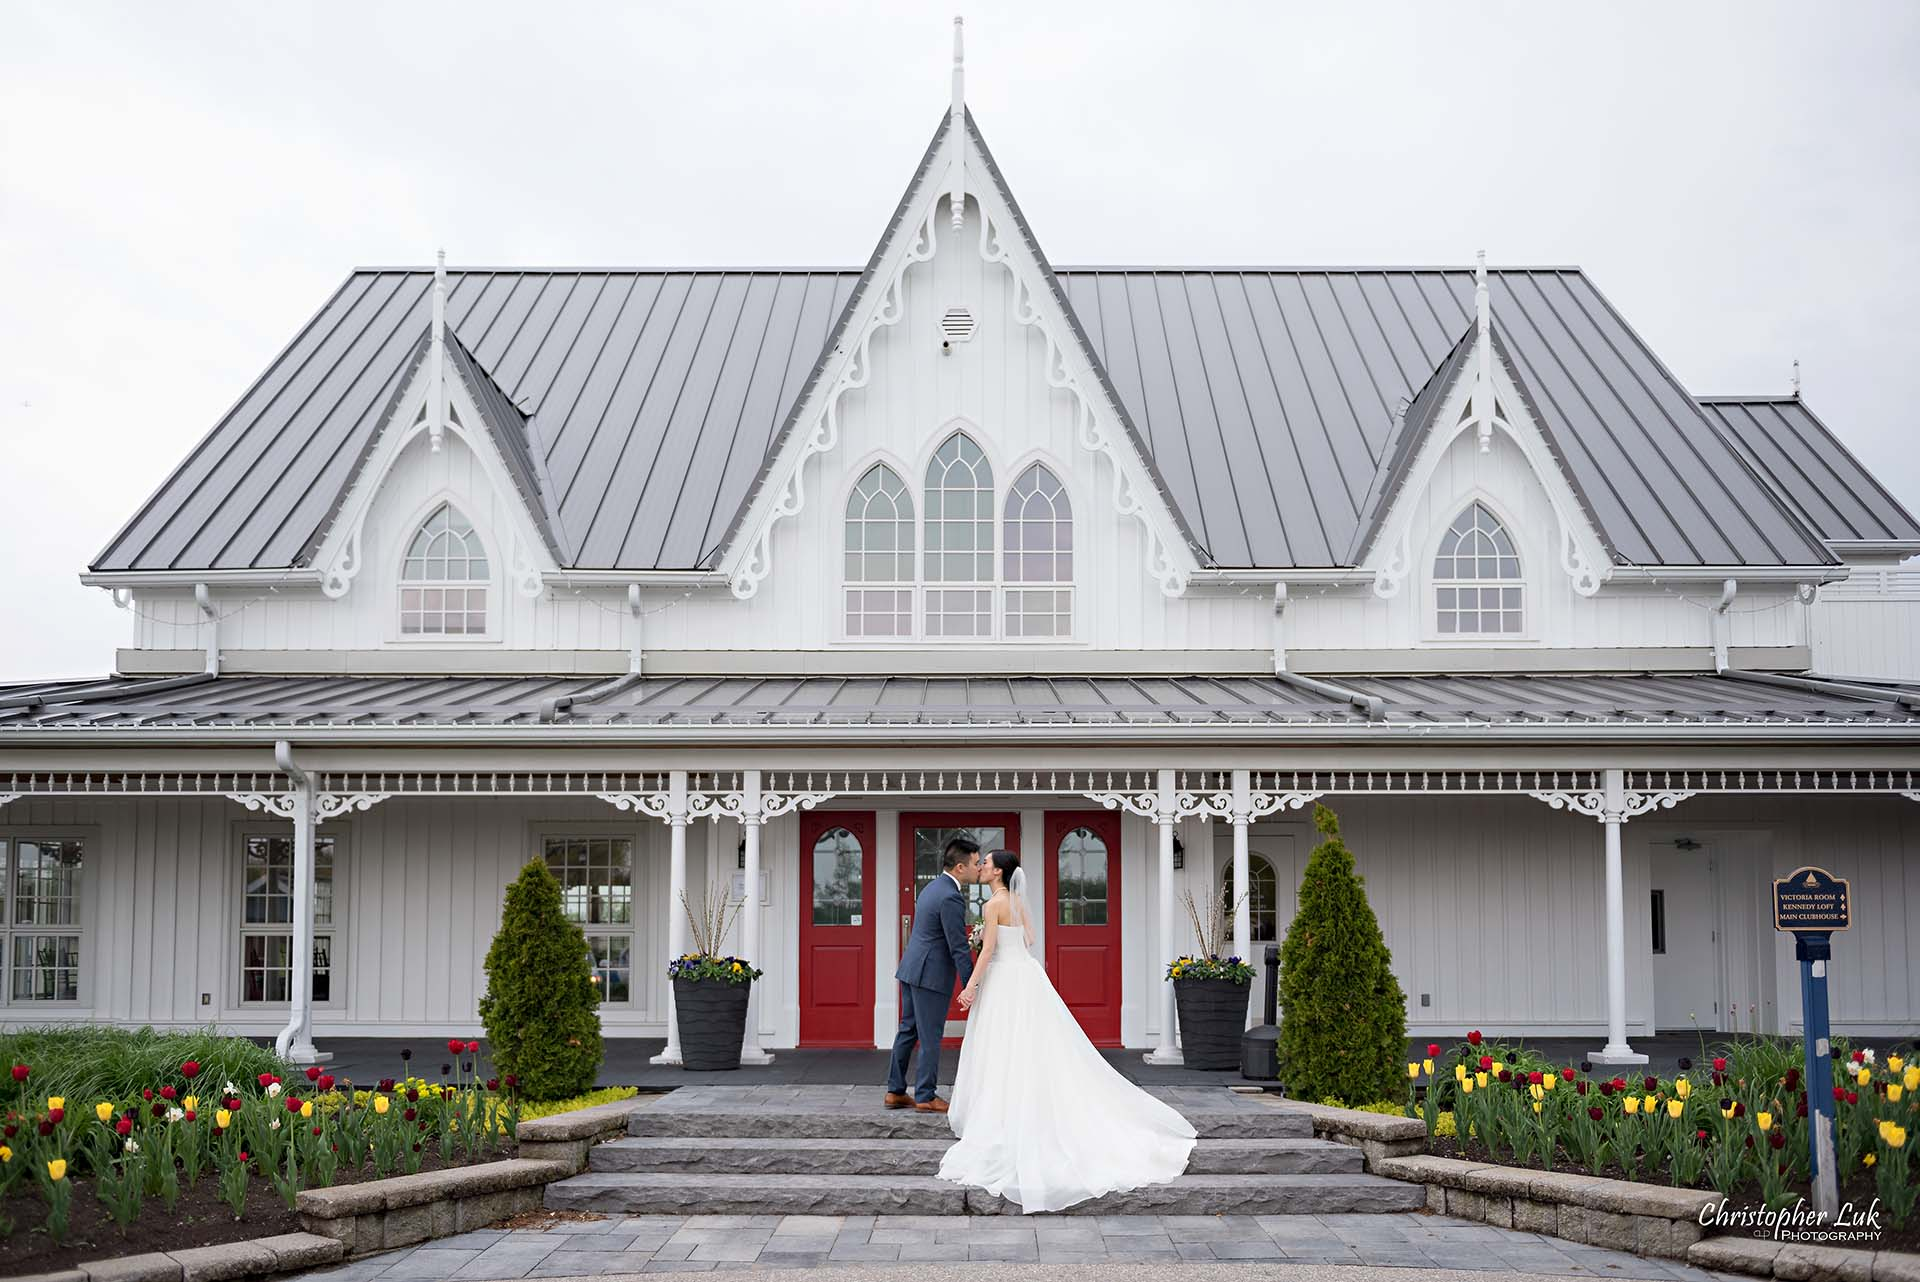 Christopher Luk Toronto Wedding Photographer Angus Glen Golf Club Markham Victoria Room Kennedy Loft Main Historic Estate Building Entrance Together Natural Candid Photojournalistic Bride Groom Bridal Gown Dress Train Staircase Kiss